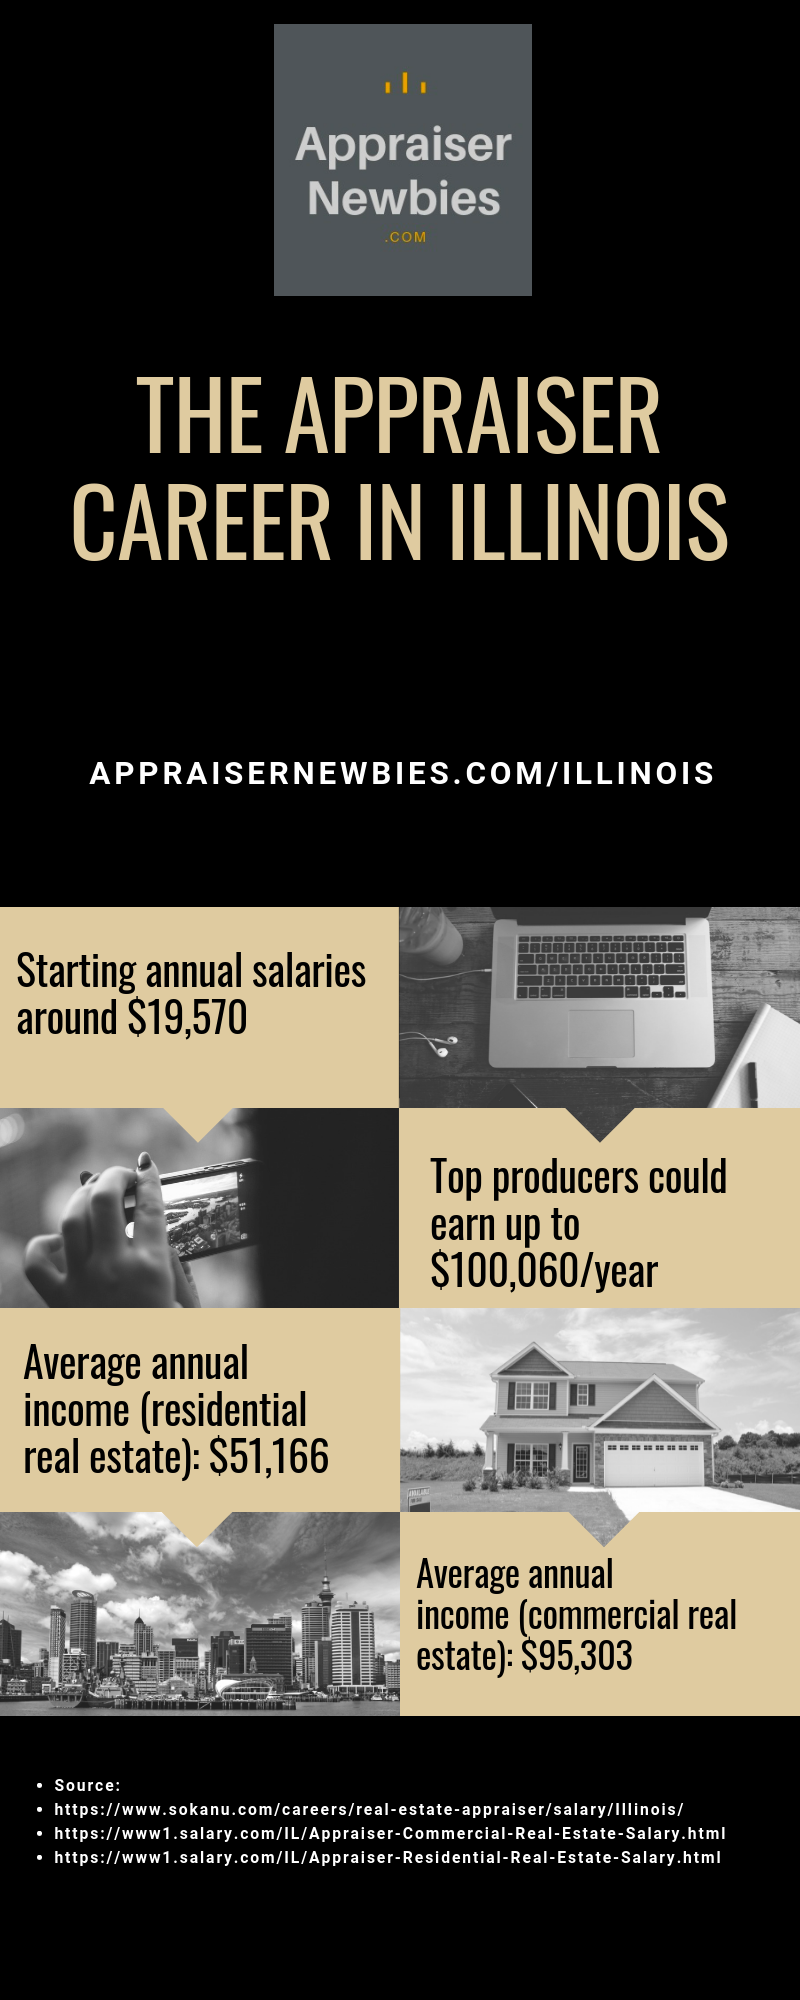 To become a real estate appraiser in Illinois, you need to ...